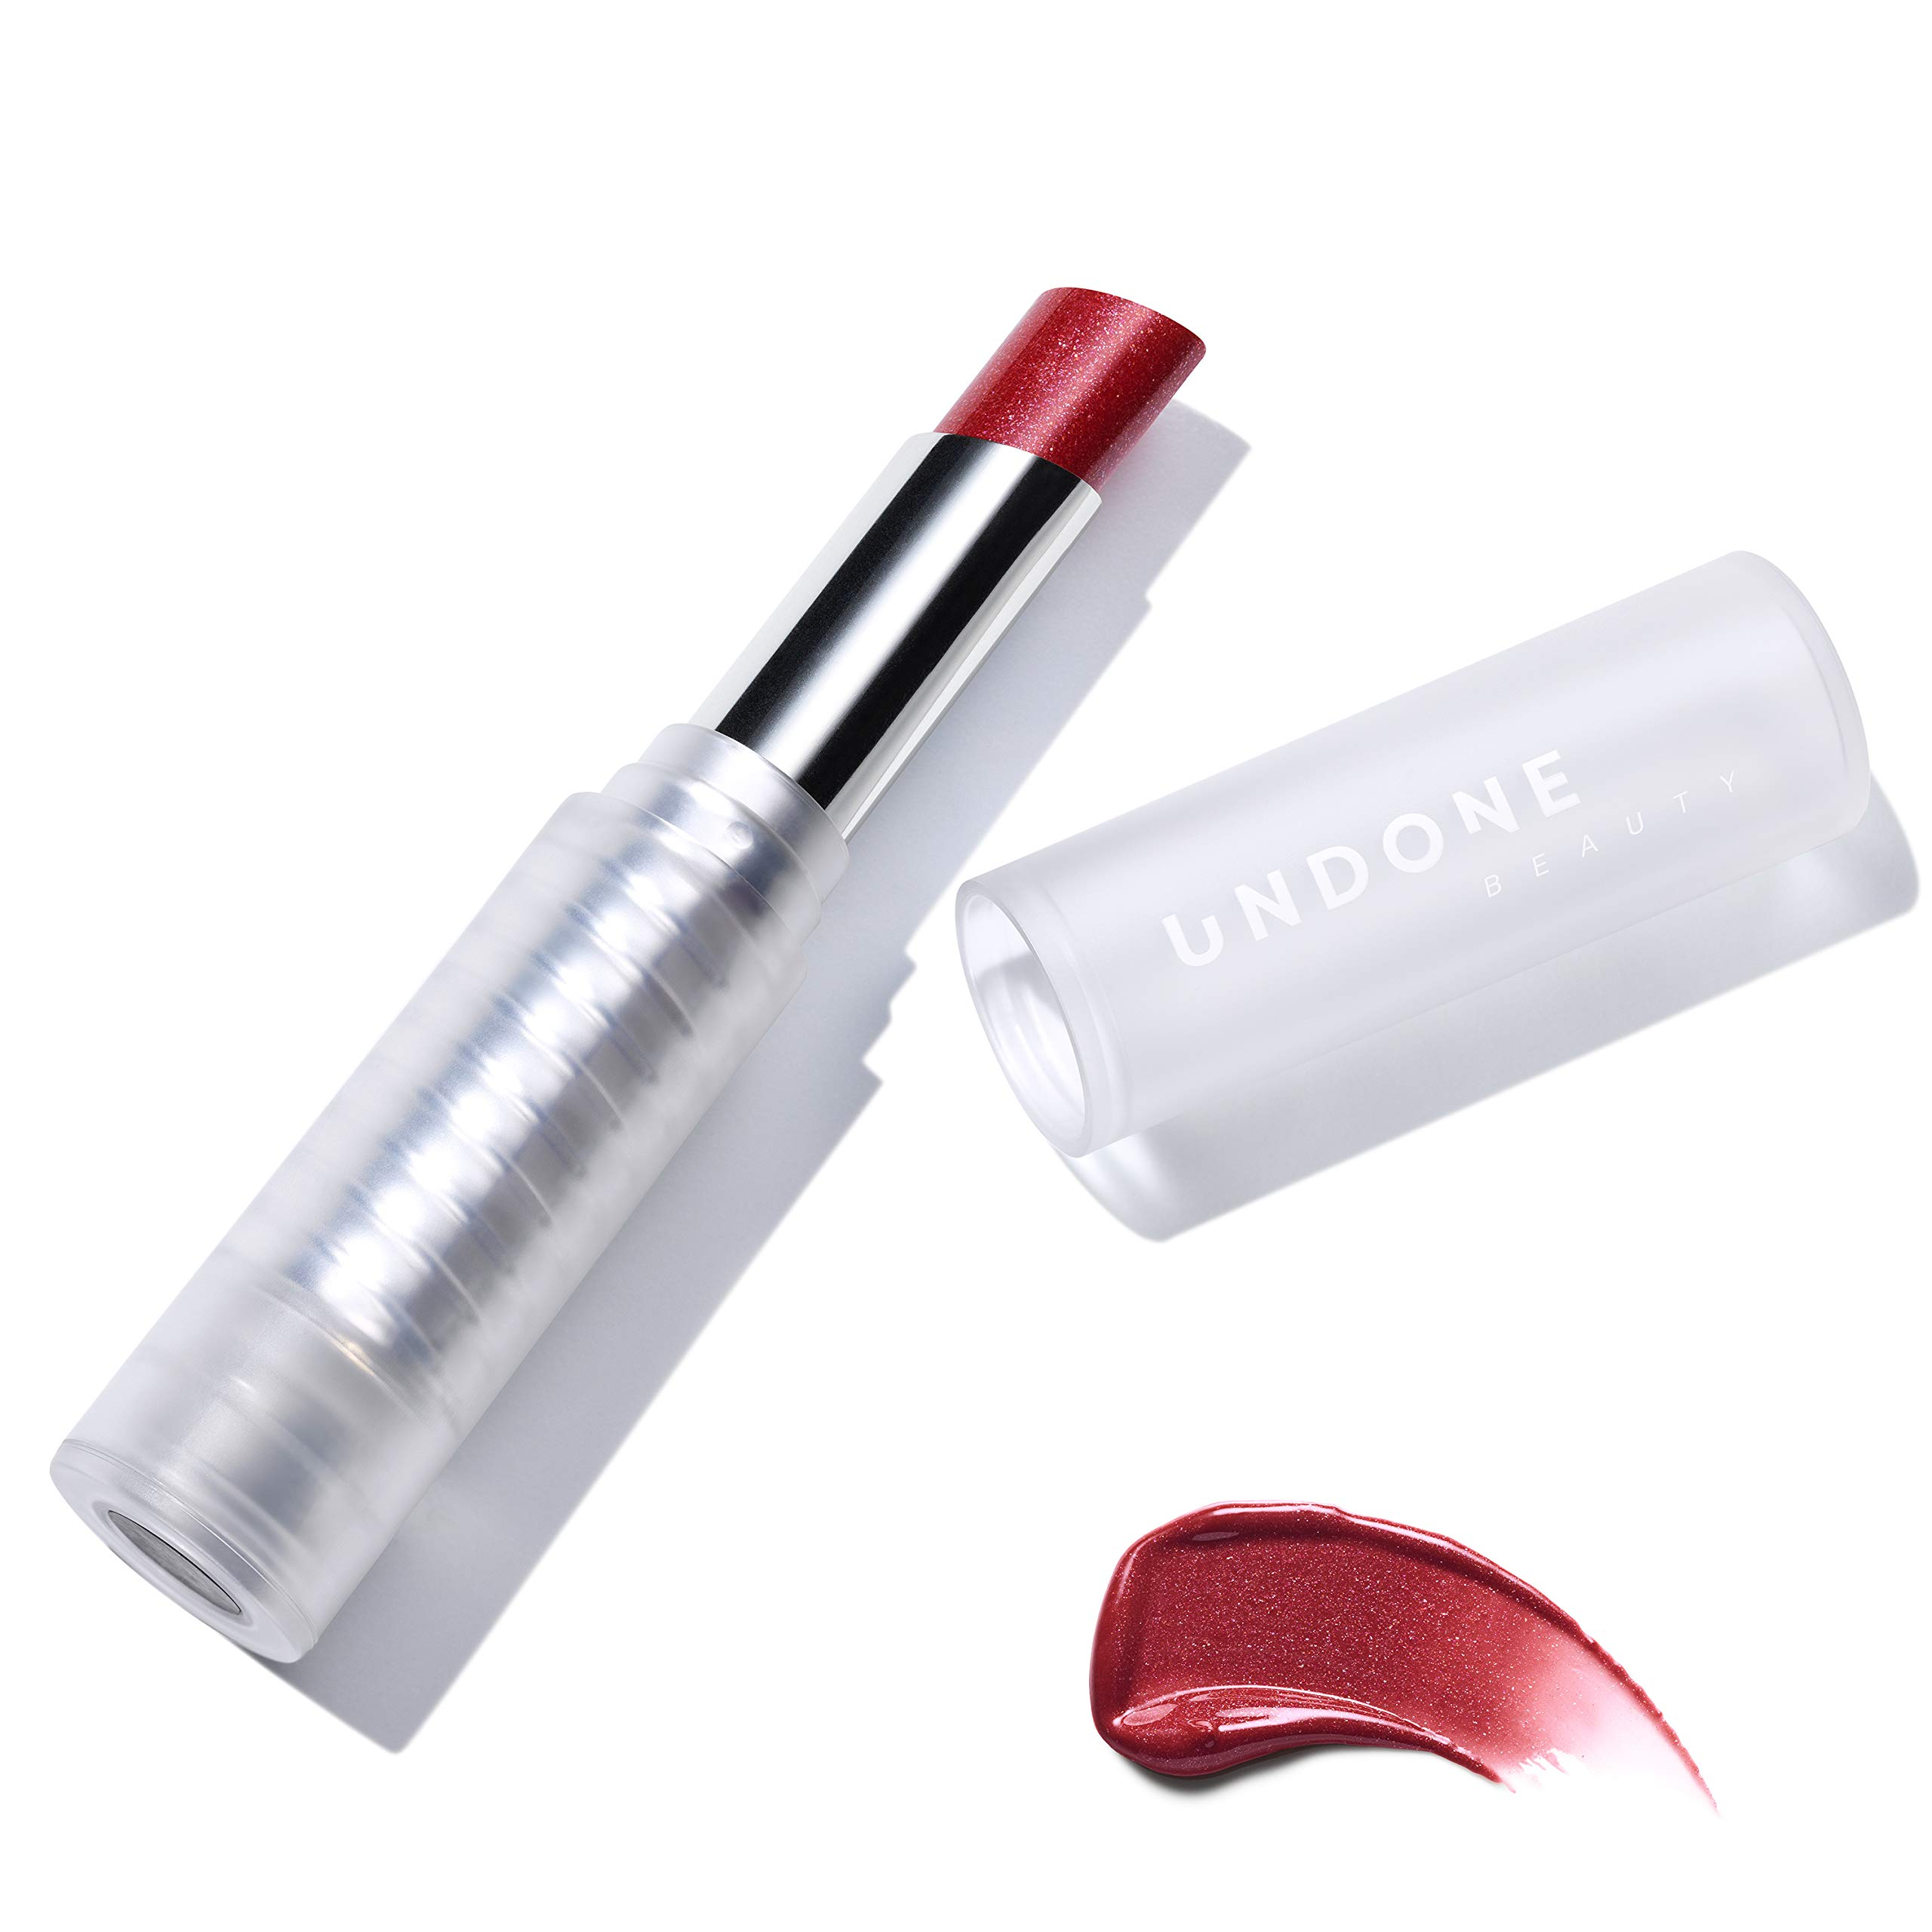 null - Light Reflecting, Lip Amplifying Lipstick. Sheer, Buildable, Hydrating Color - UNDONE BEAUTY Light On Lip. Aloe, Coconut & Volume Enhancing Pigment. Paraben, Vegan & Cruelty Free. ROYAL RED